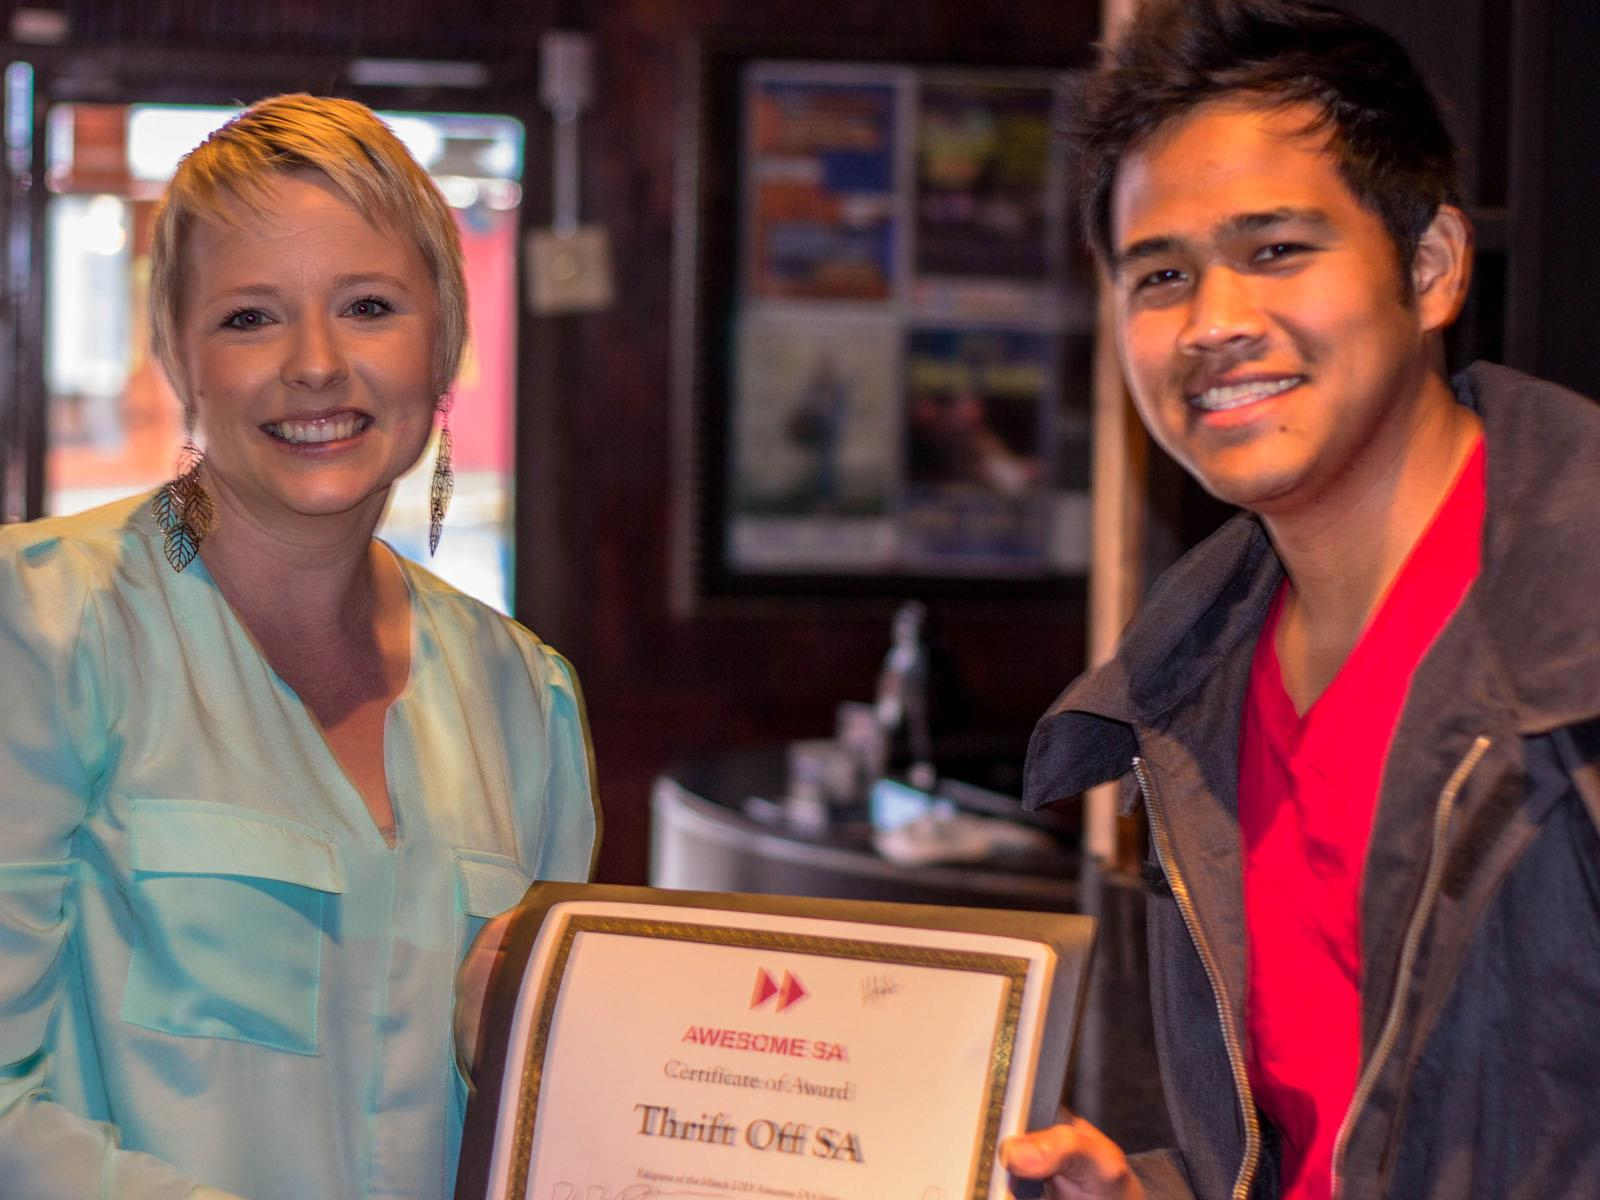 Somer Baburek and _____, receive a $1,000 grant on behalf of the Thrift Off SA project. Photo by Hugh Donagher.